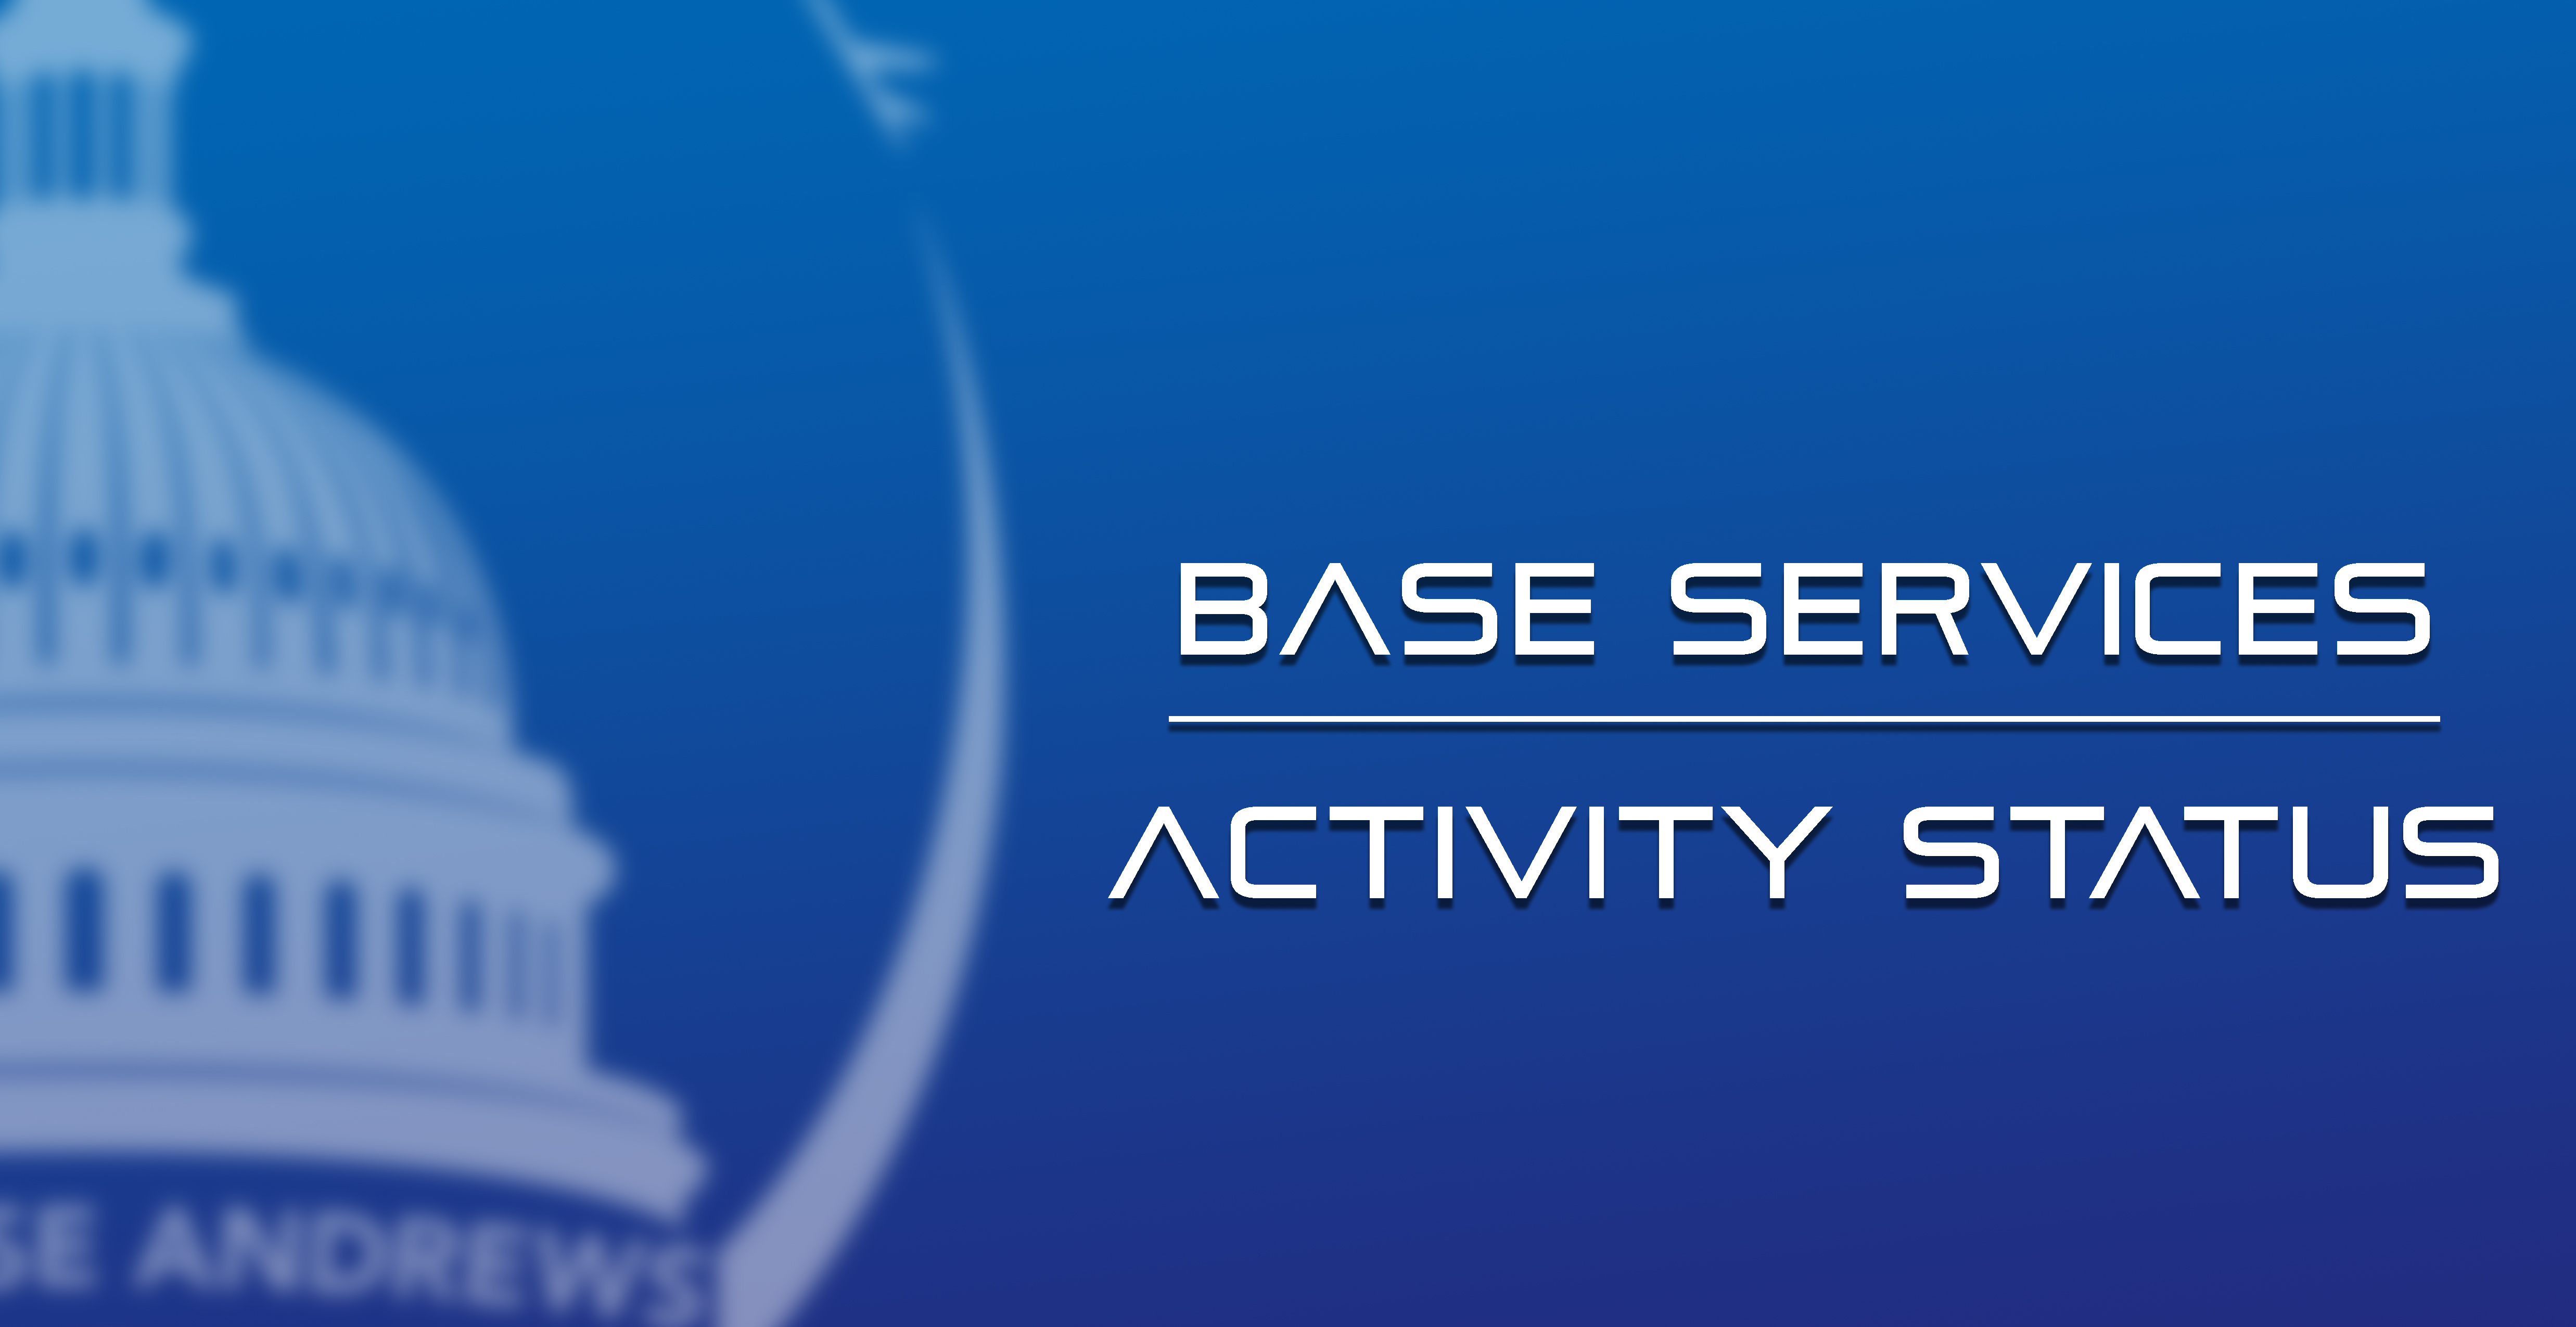 Base Services Activity Status